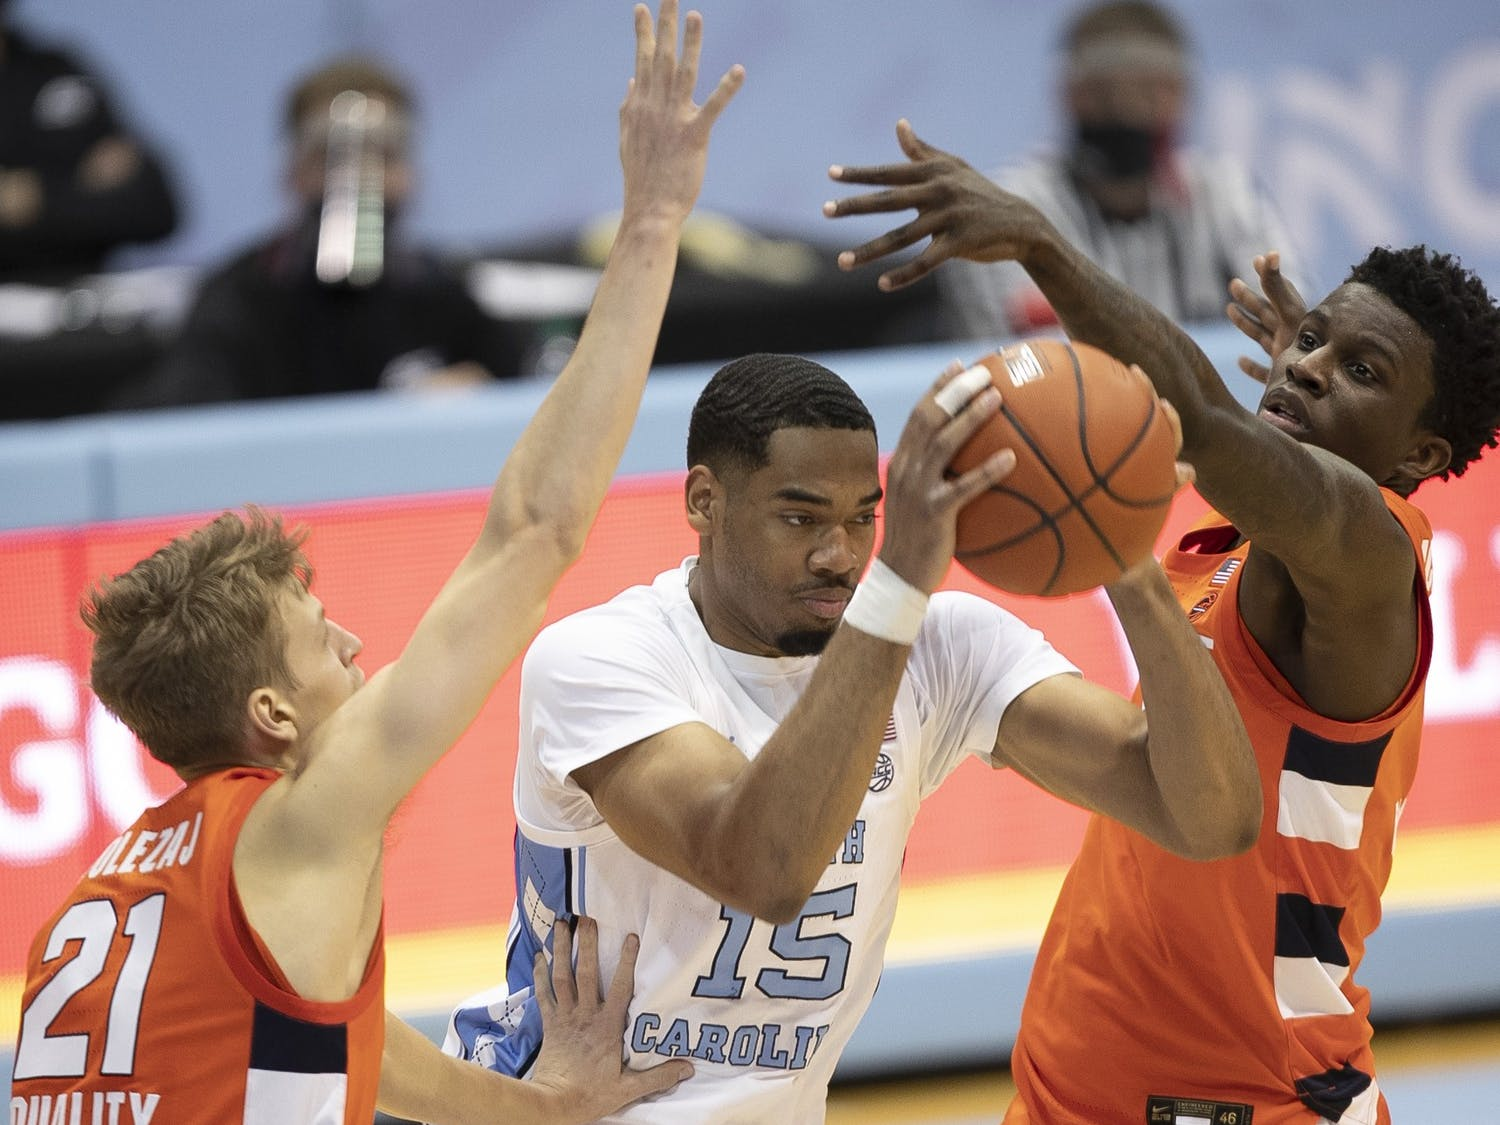 North Carolina's Garrison Brooks (15) is trapped by Syracuse's Marek Dolezaj (21) and Kadary Richmond (3) during the second half on Tuesday, January 12, 2021 at the Smith Center in Chapel Hill, NC. Photo courtesy of Robert Willett.